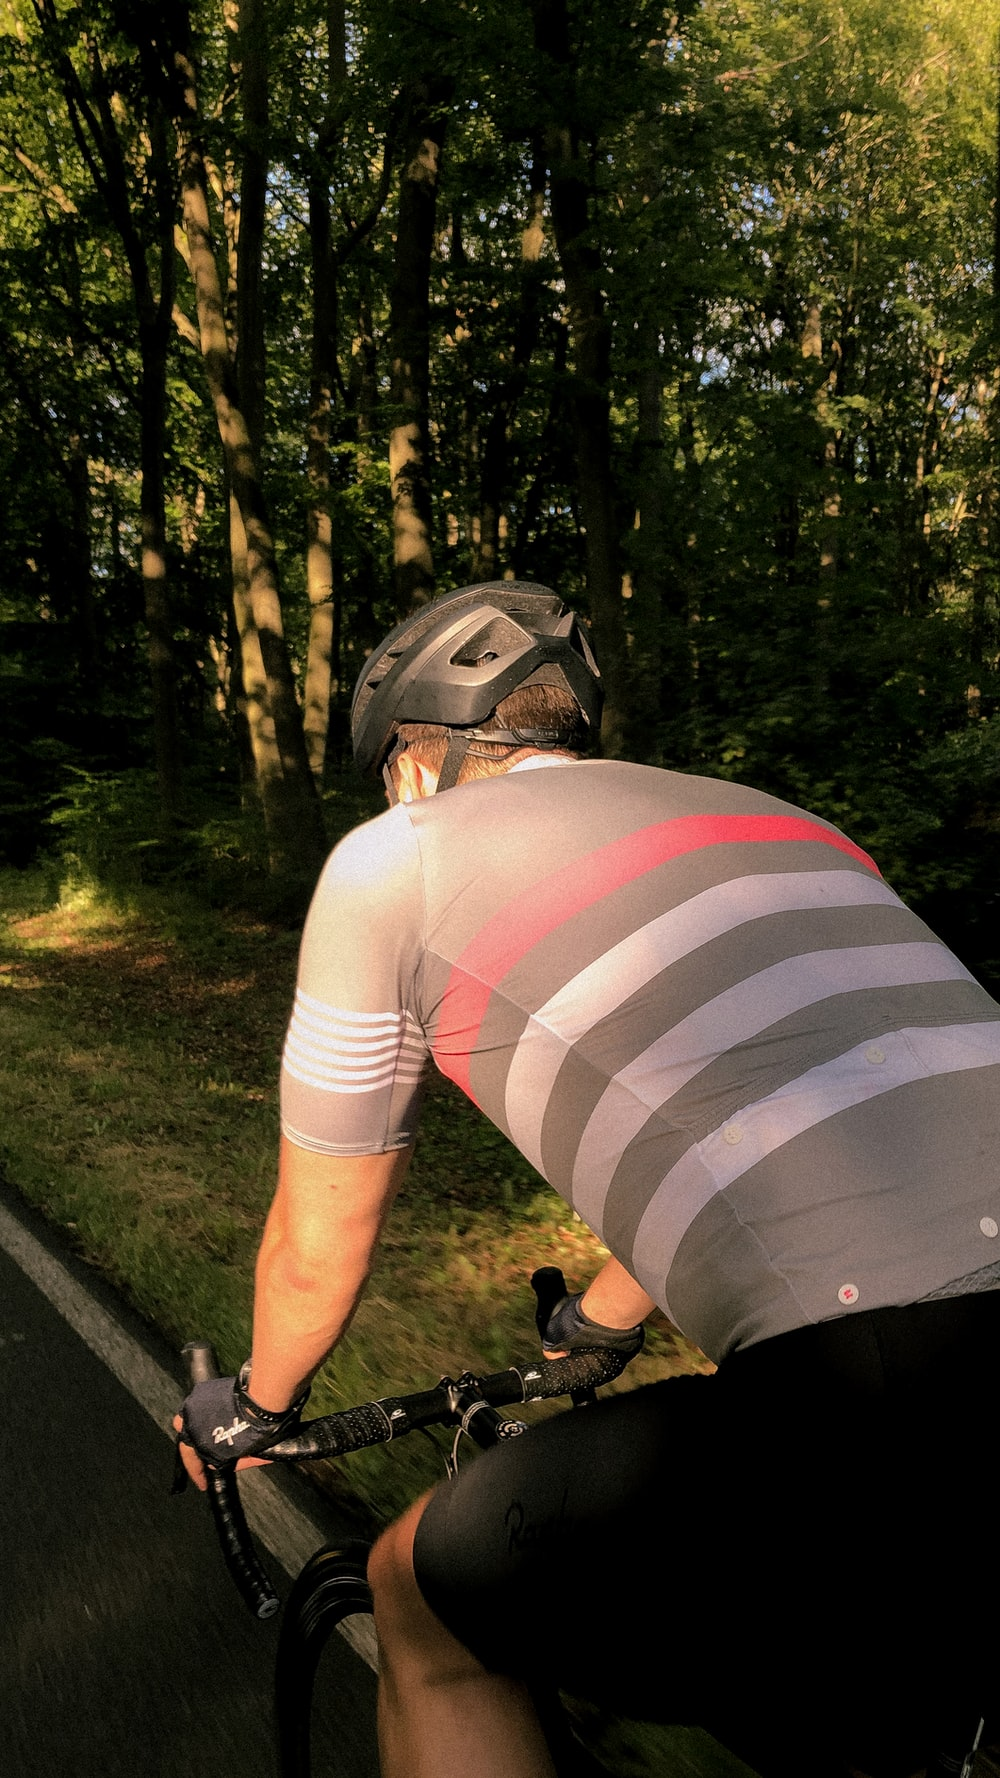 person in white and black stripe shirt wearing helmet